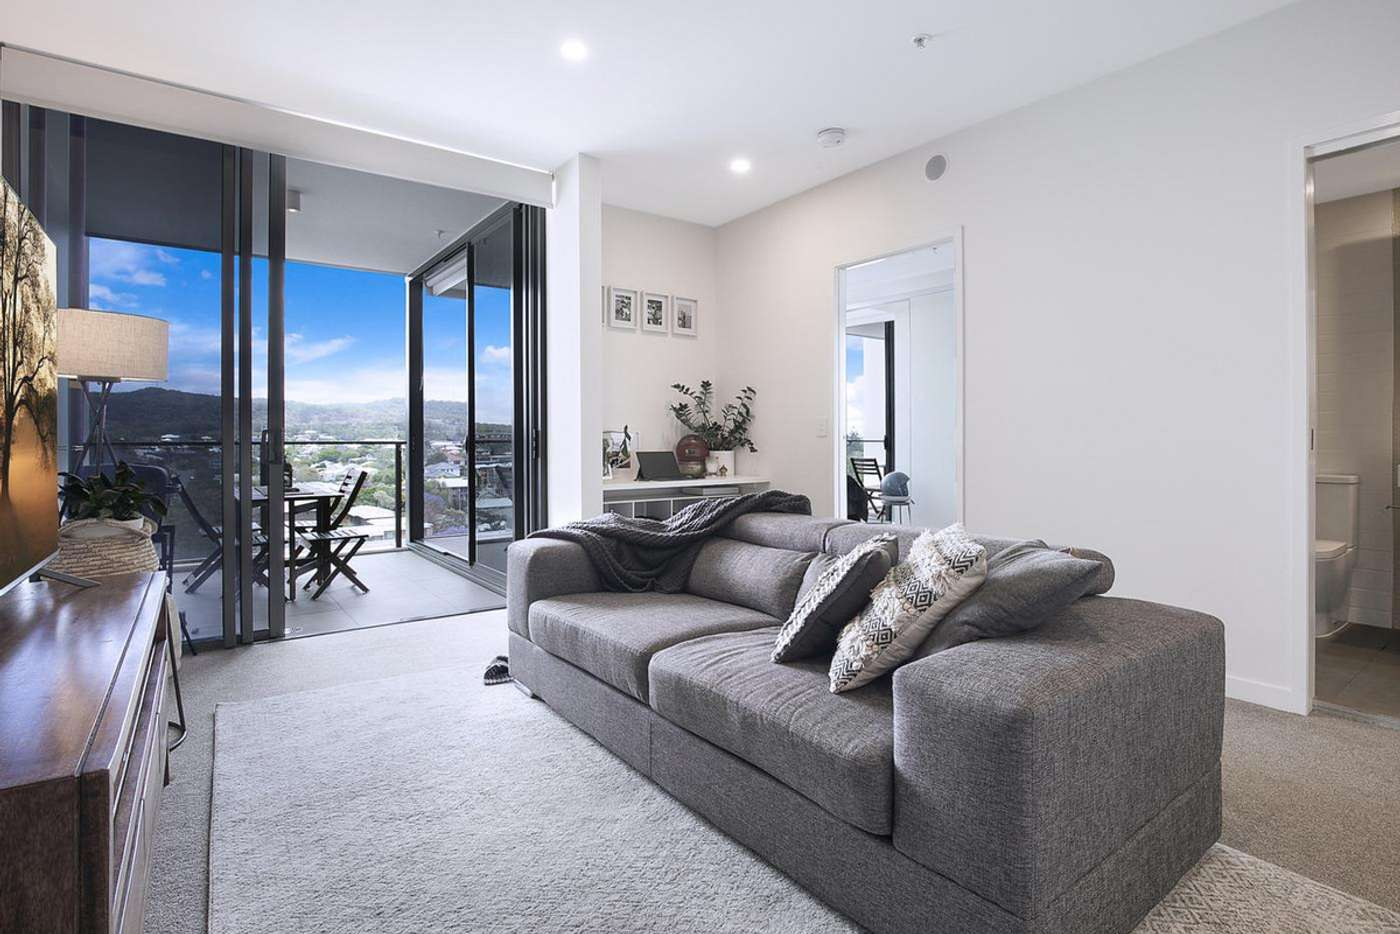 Fifth view of Homely apartment listing, 1107/48 Jephson Street, Toowong QLD 4066